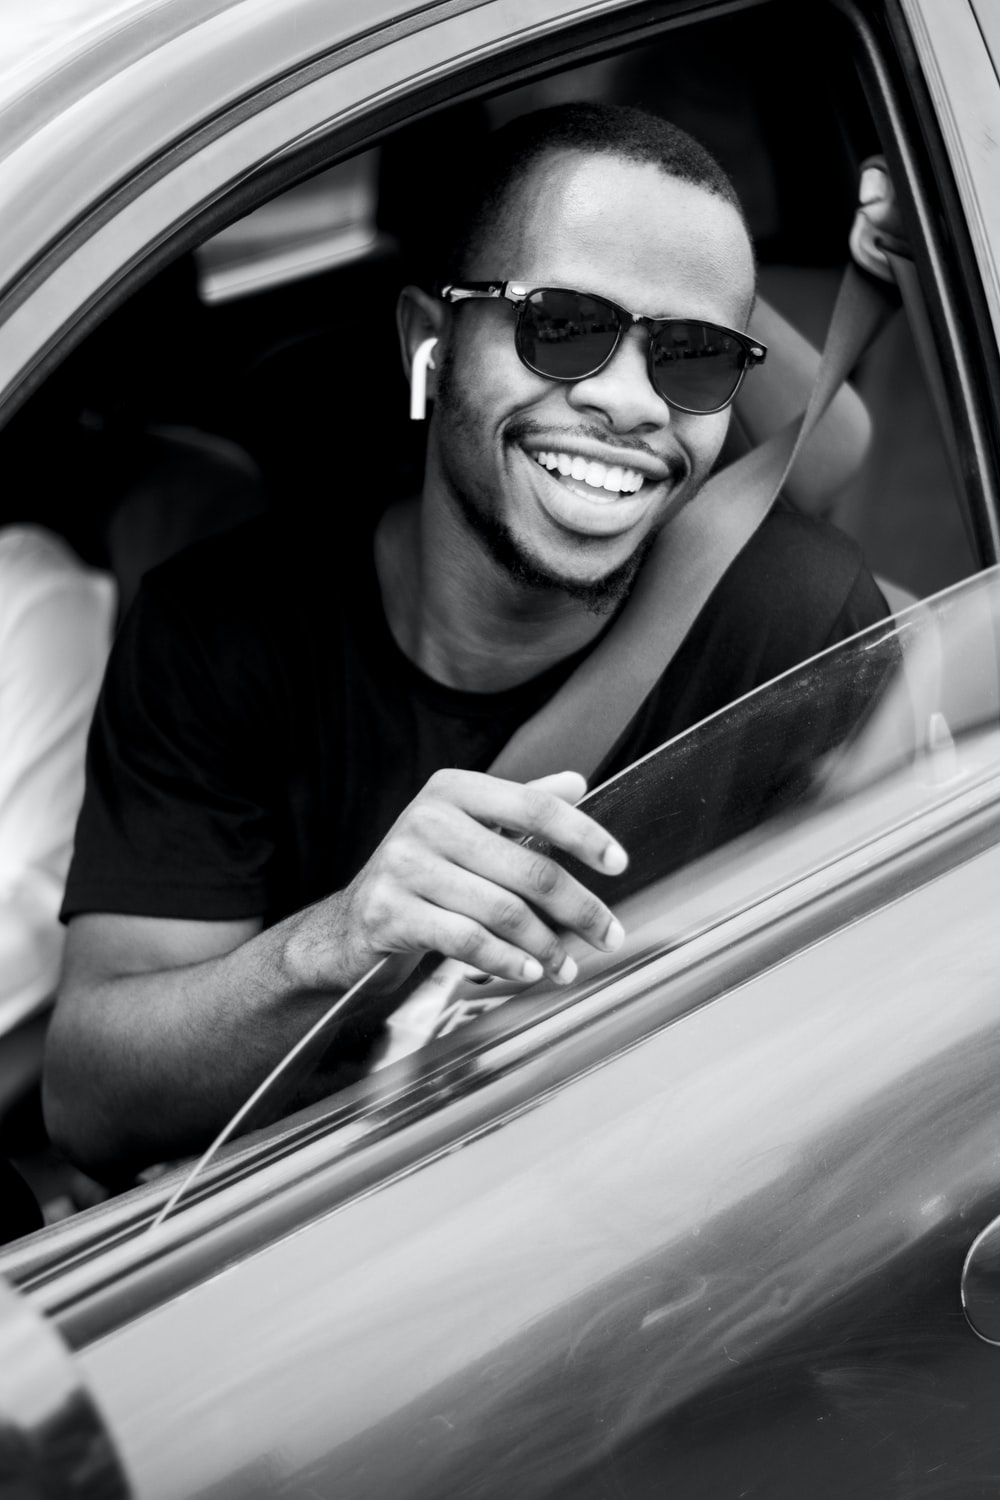 grayscale photo of man wearing sunglasses driving car